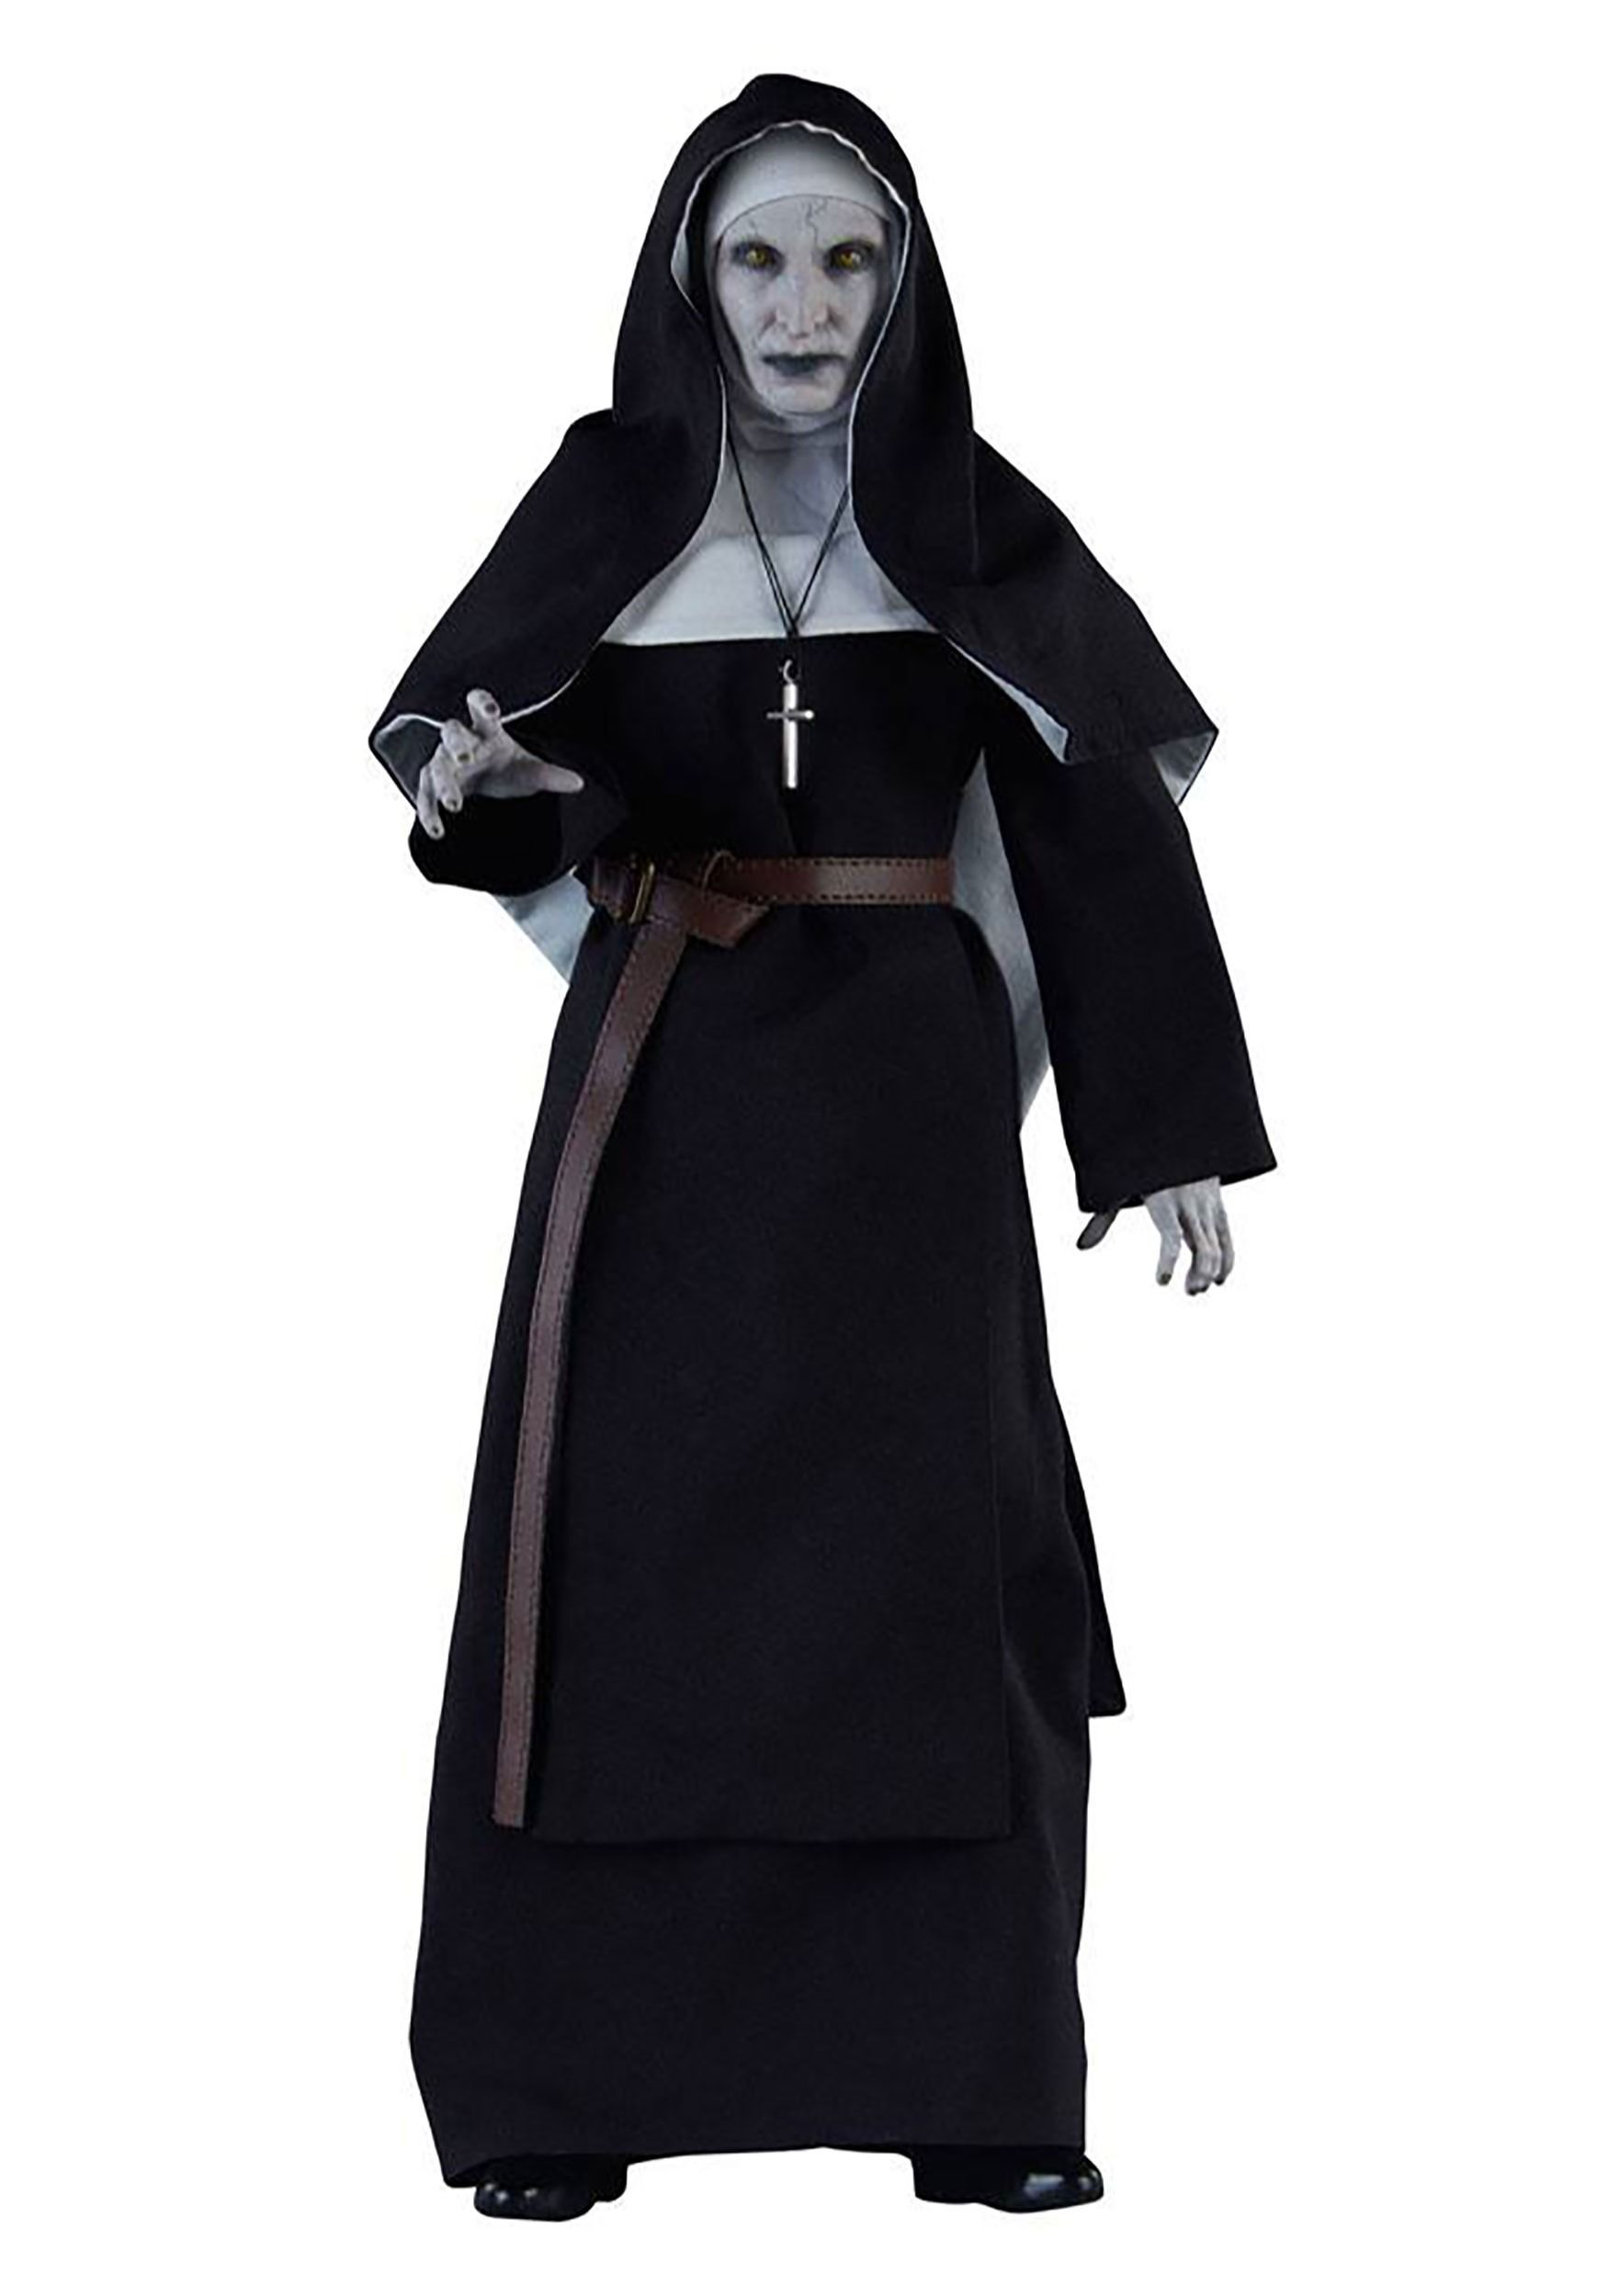 The Nun Vs Halloween 2020 The Nun 1:6 Scale Articulated Figure   FOREVER HALLOWEEN in 2020